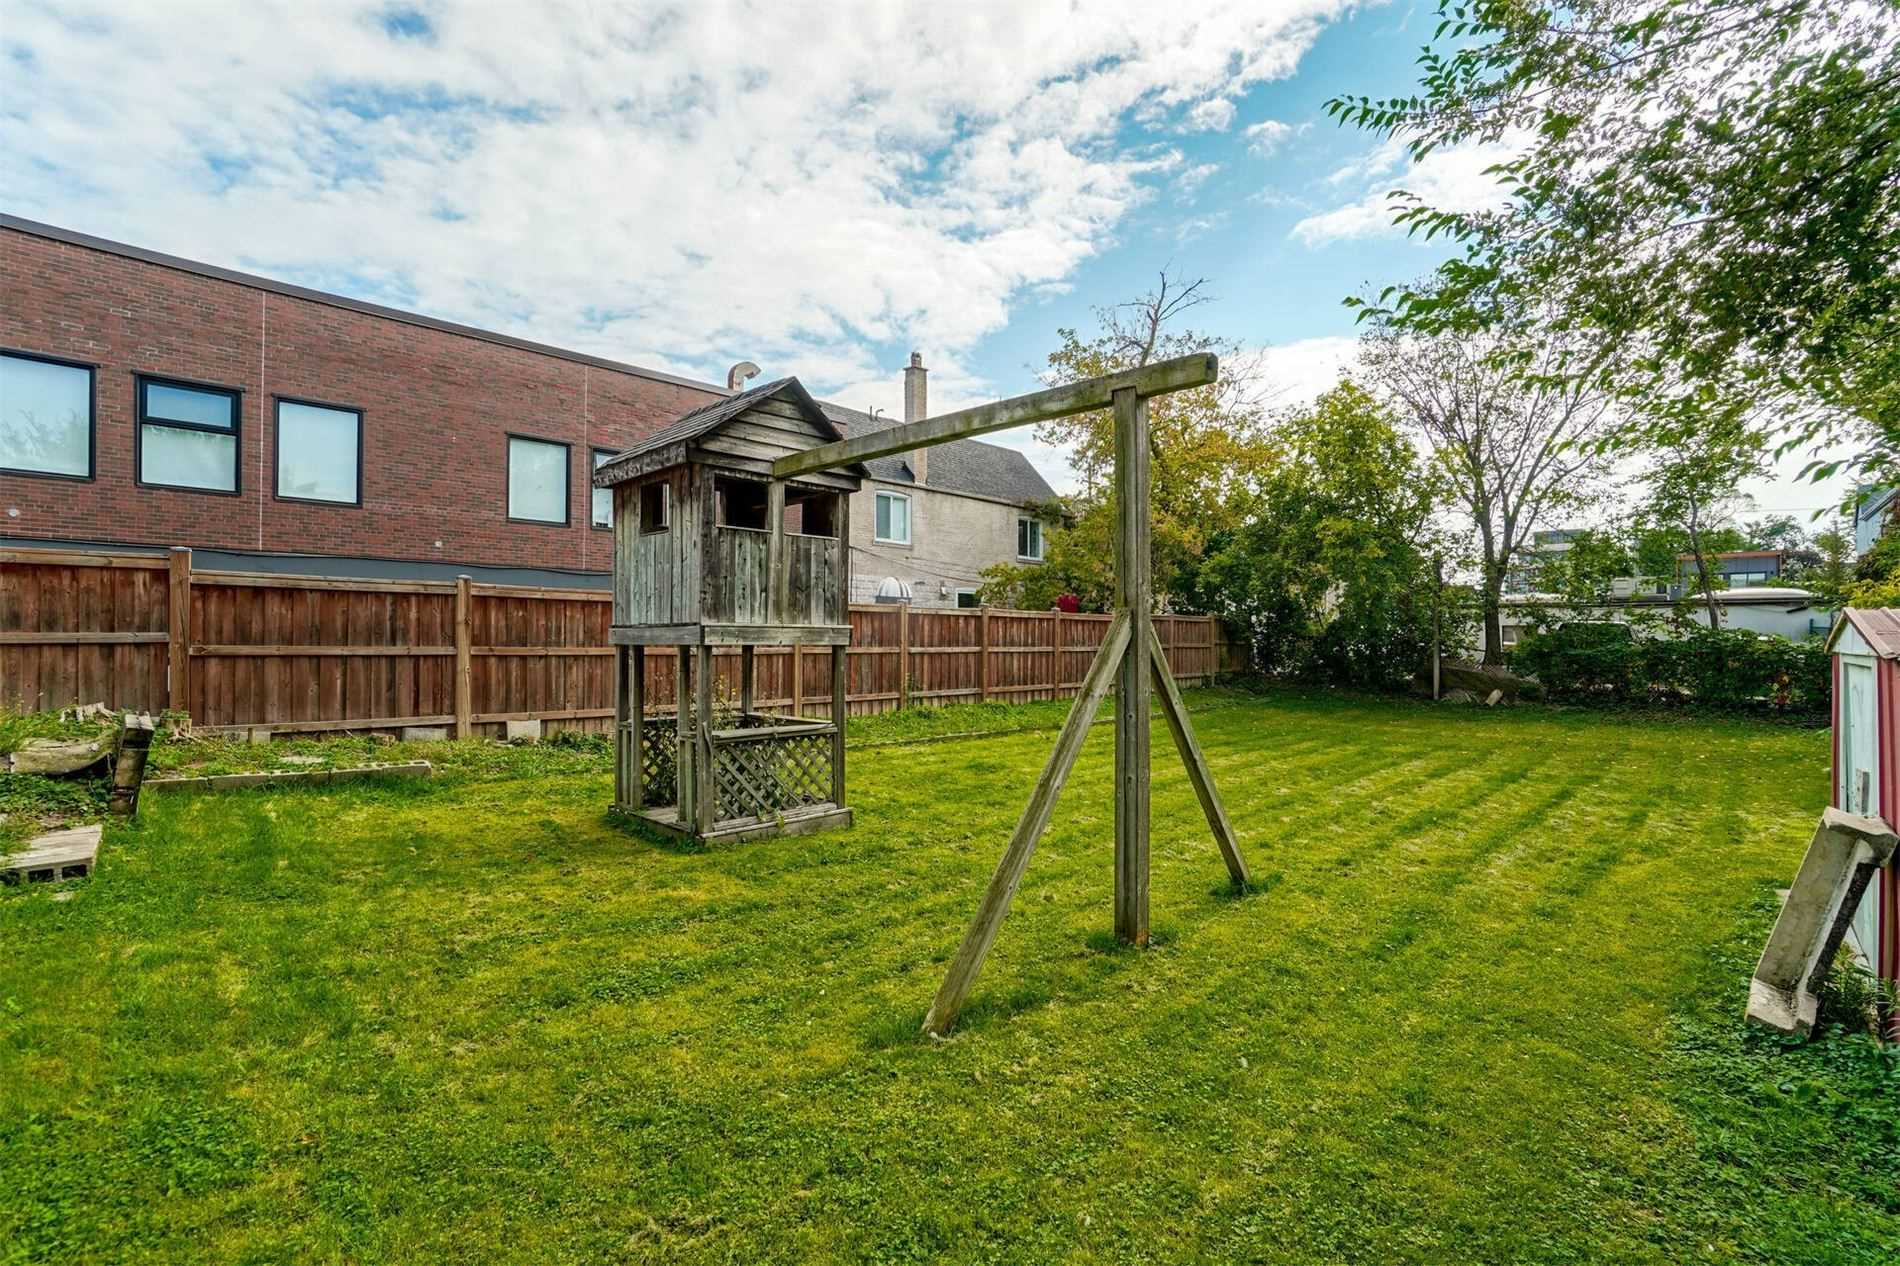 Detached house For Sale In Toronto - 367 Melrose Ave, Toronto, Ontario, Canada M5M1Z6 , 4 Bedrooms Bedrooms, ,2 BathroomsBathrooms,Detached,For Sale,Melrose